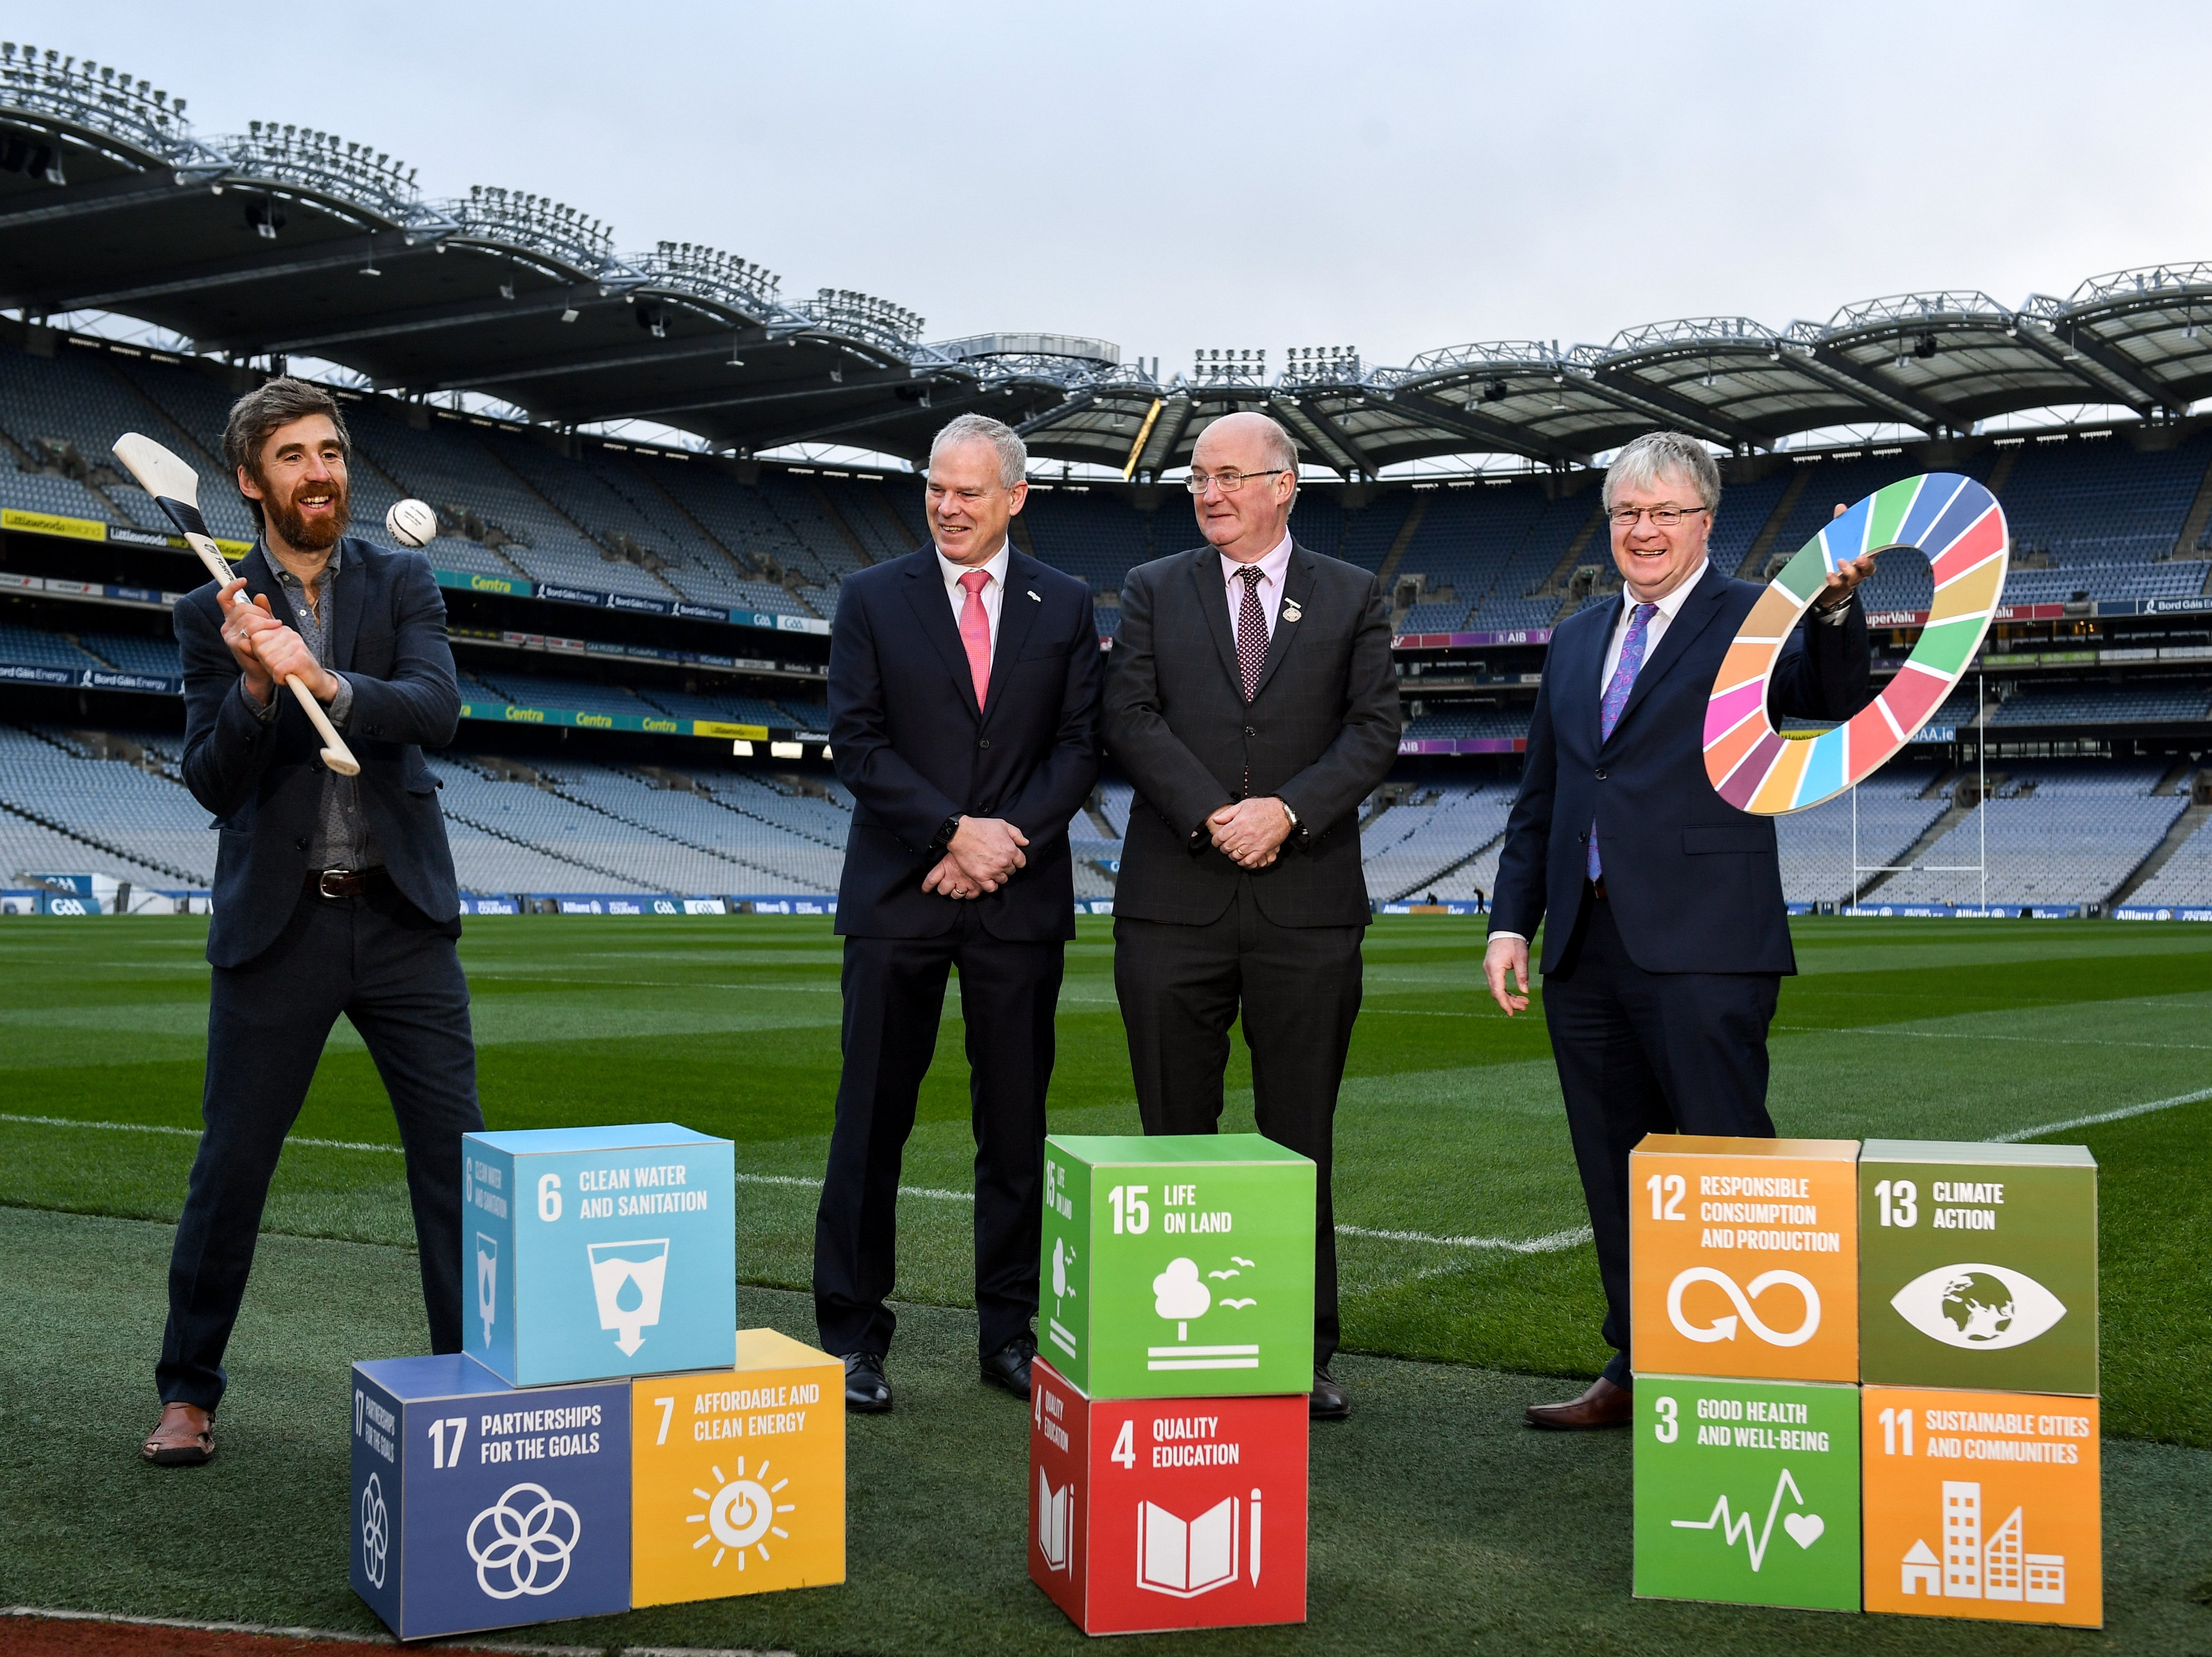 Local Authorities & the GAA to Partner for Sustainable Communities